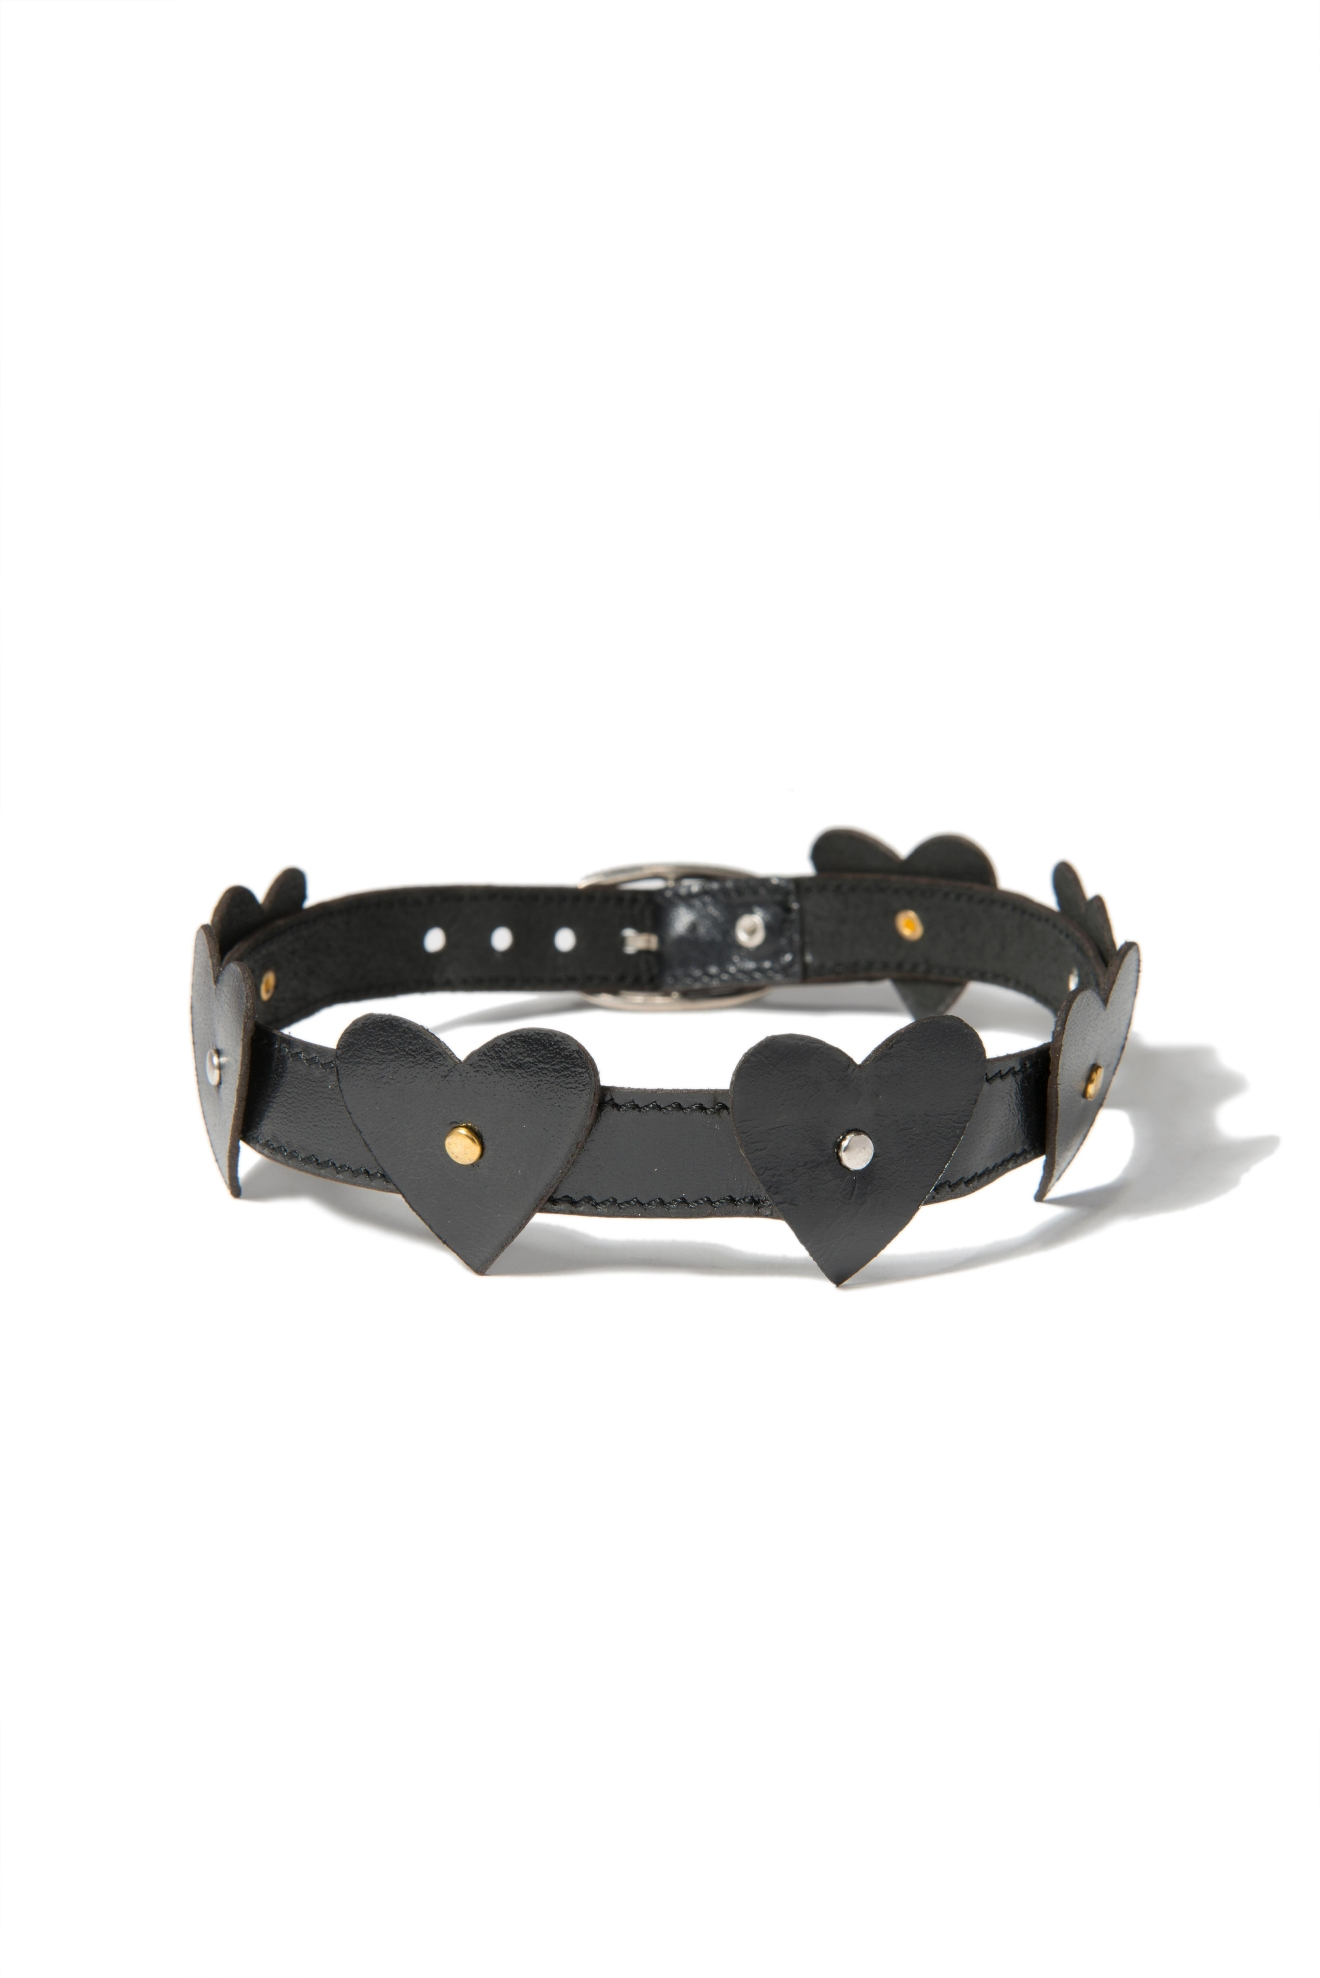 Venessa Arizaga Love You To Death Leather Choker Necklace - $150. Buy at shop.nordstrom.com/c/pop-in-olivia-kim (Image: Nordstrom)